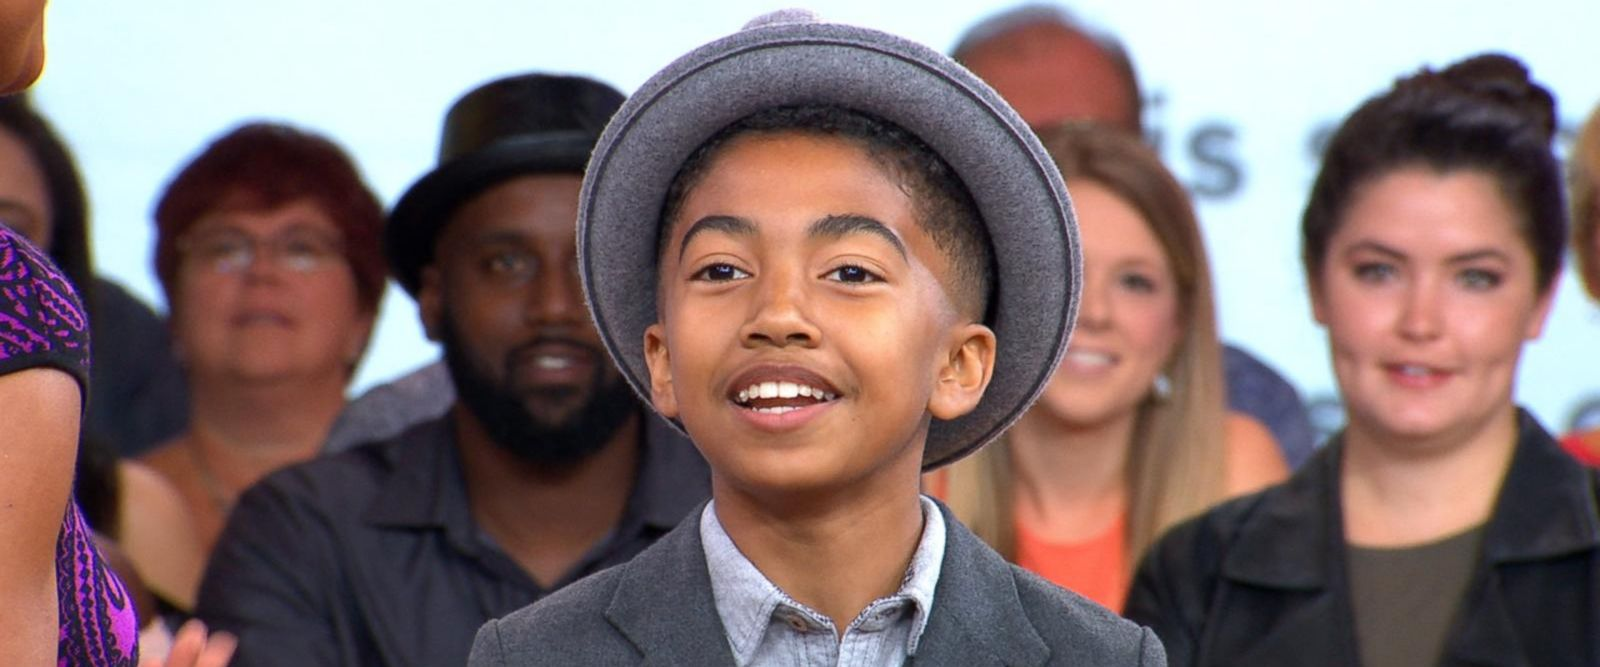 VIDEO: Kid correspondent Miles Brown takes over the NBA Awards red carpet